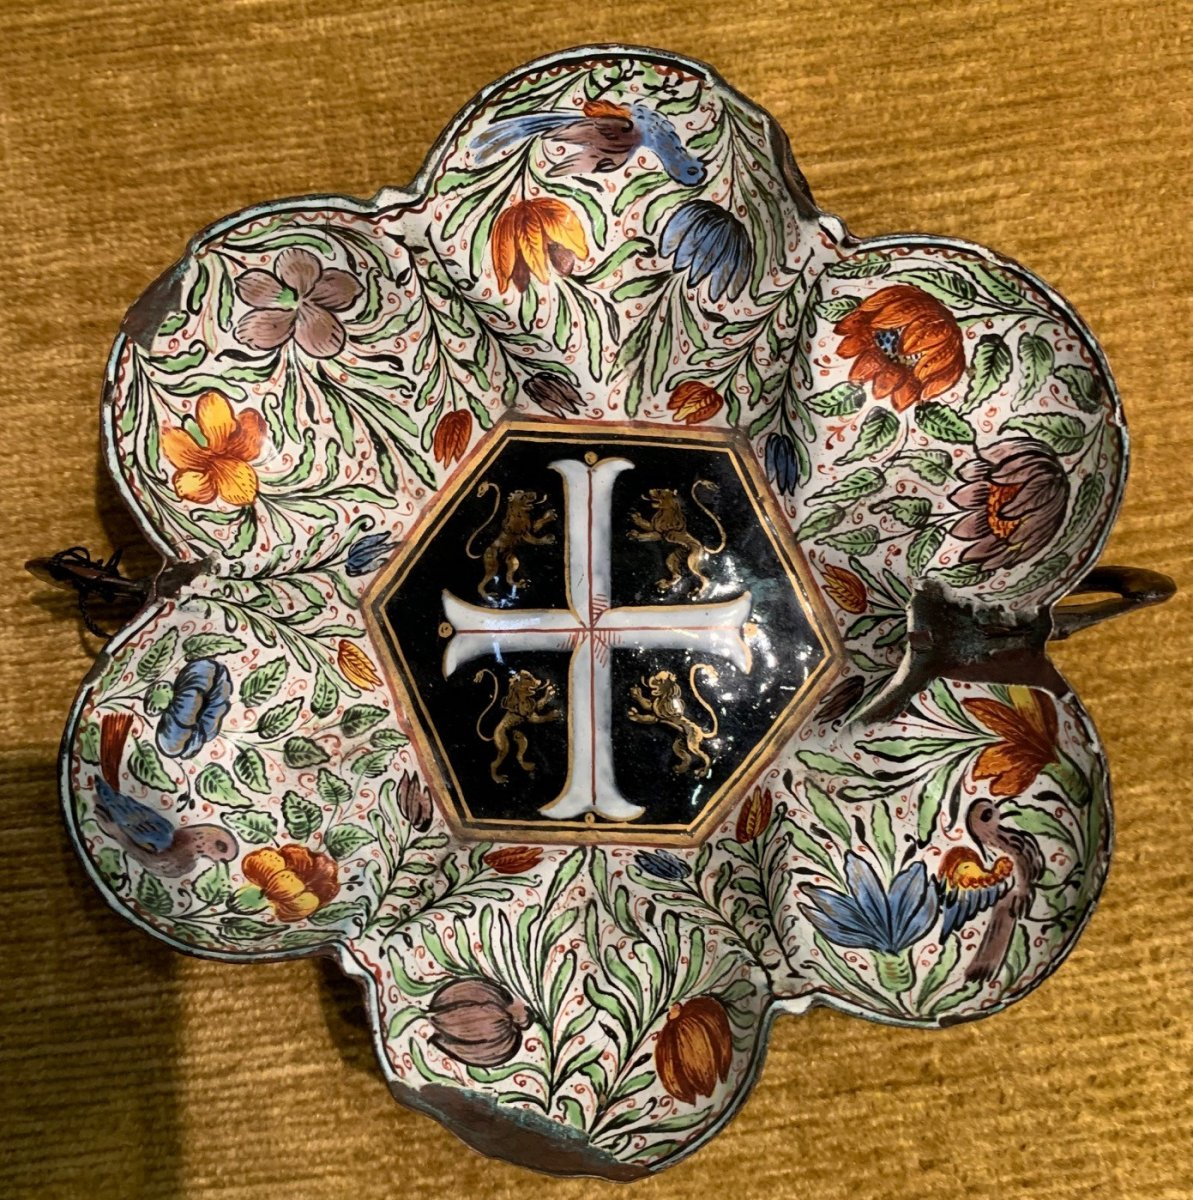 Enamelled Bowl From Limoges. 1650-1690